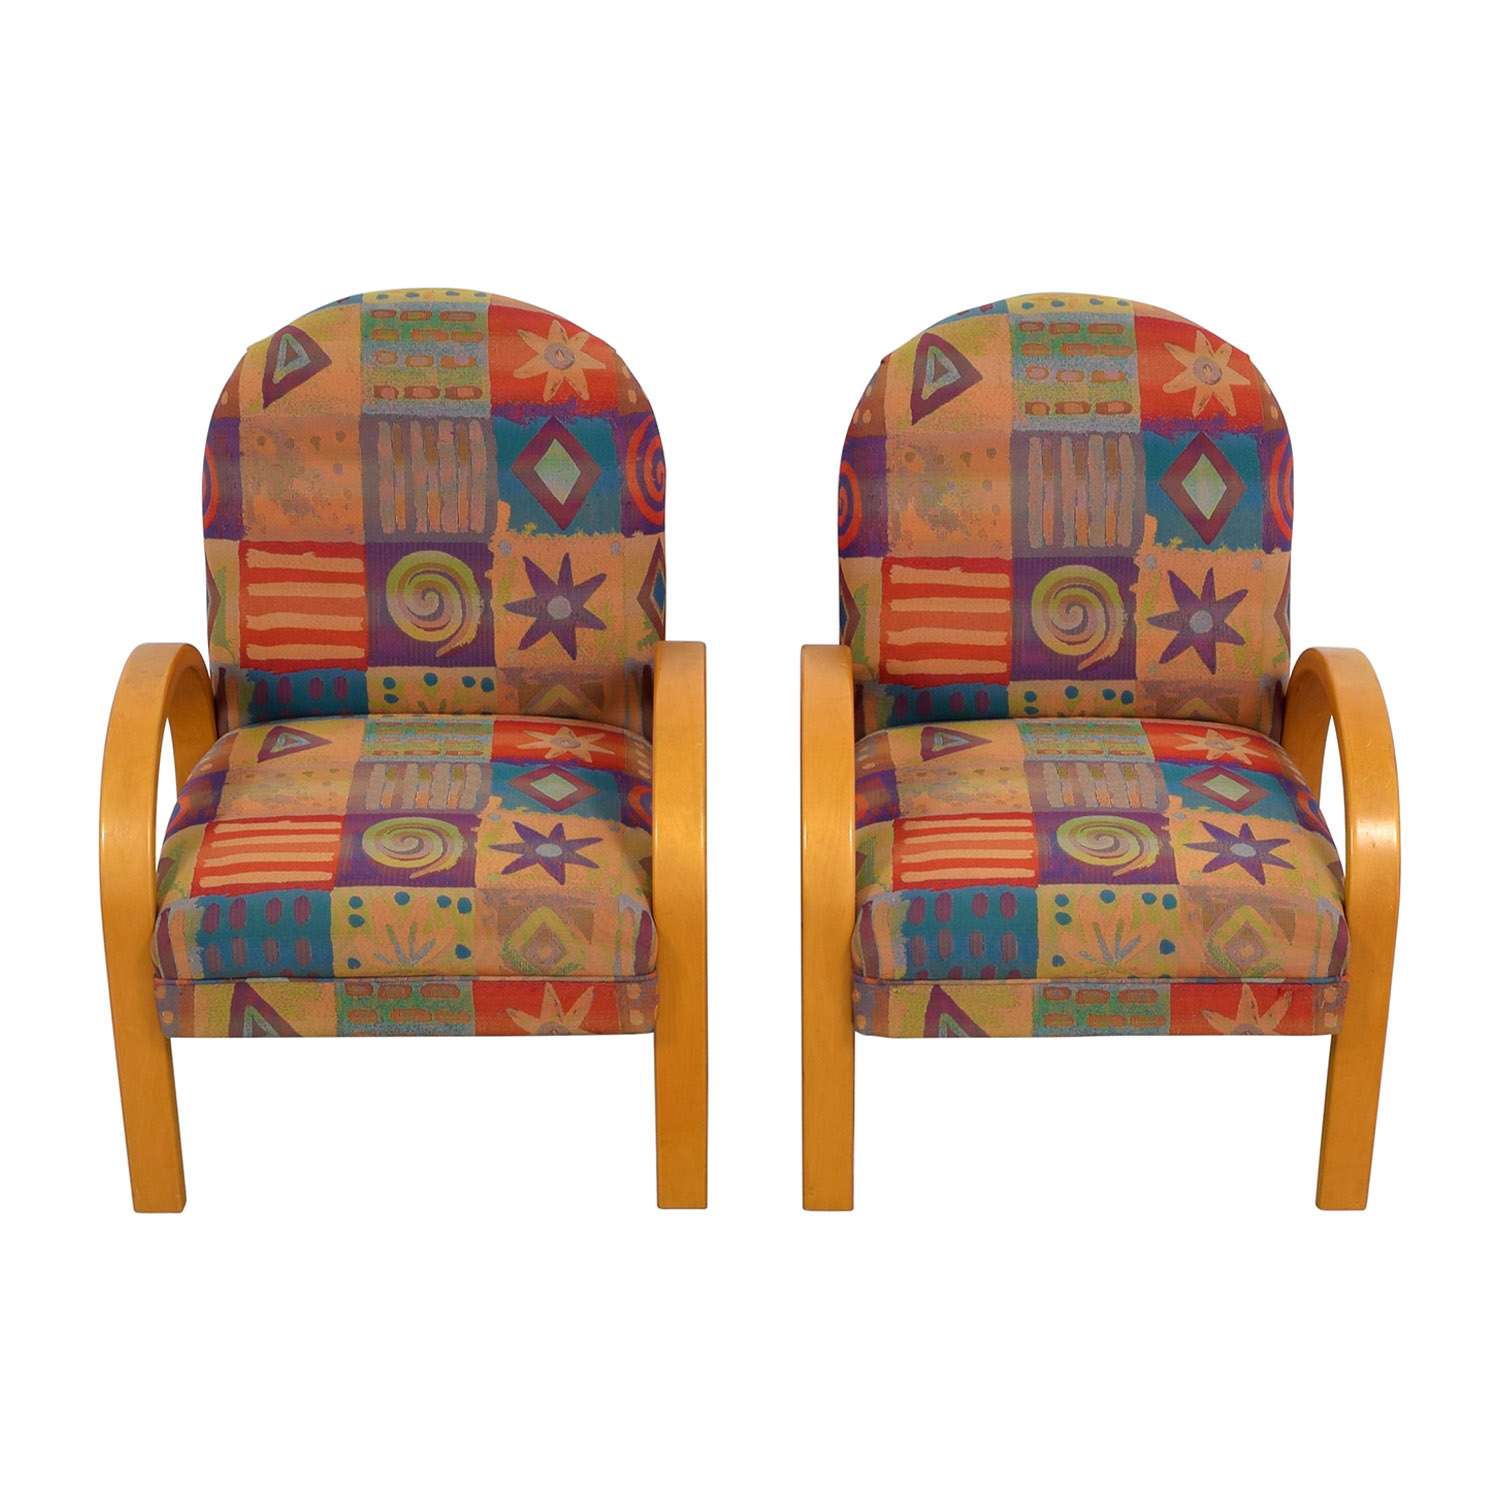 Lazy Boy Sectionals >> 90% OFF - Lazy Boy Lazy Boy Multi-Colored Club Chairs / Chairs